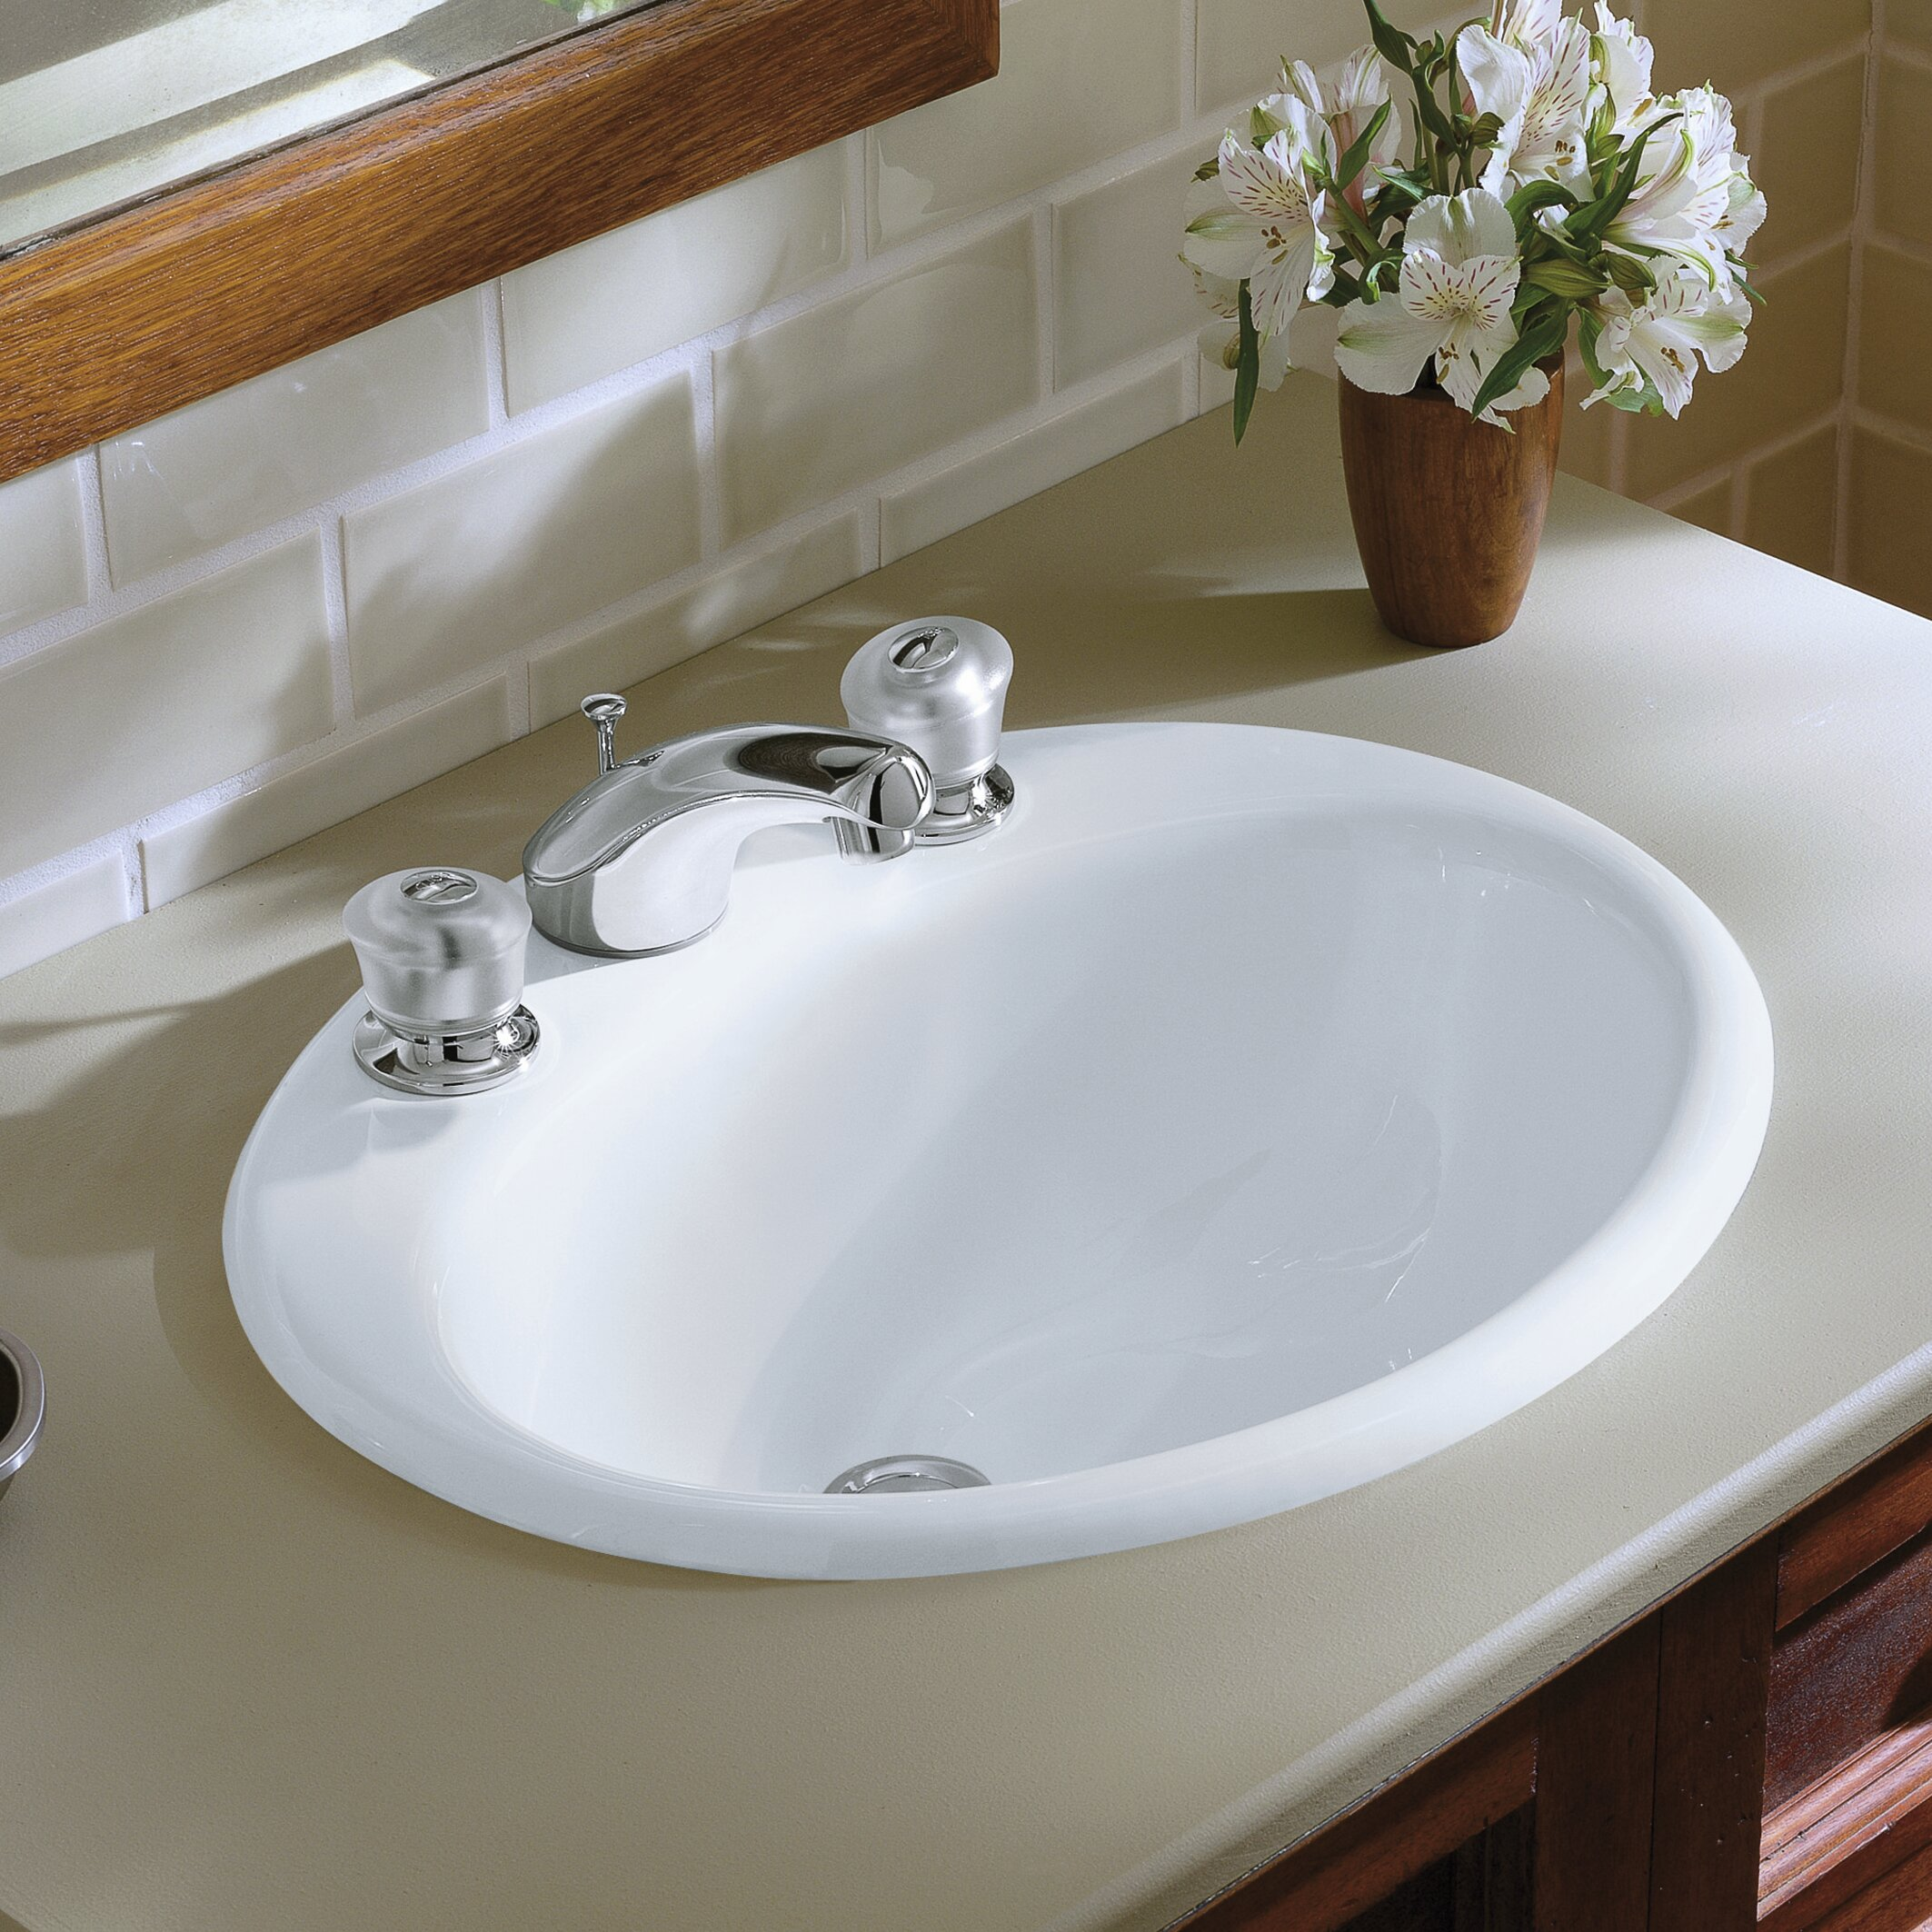 K 2905 8 0 7 96 Kohler Farmington Metal Oval Drop In Bathroom Sink With Overflow Reviews Wayfair